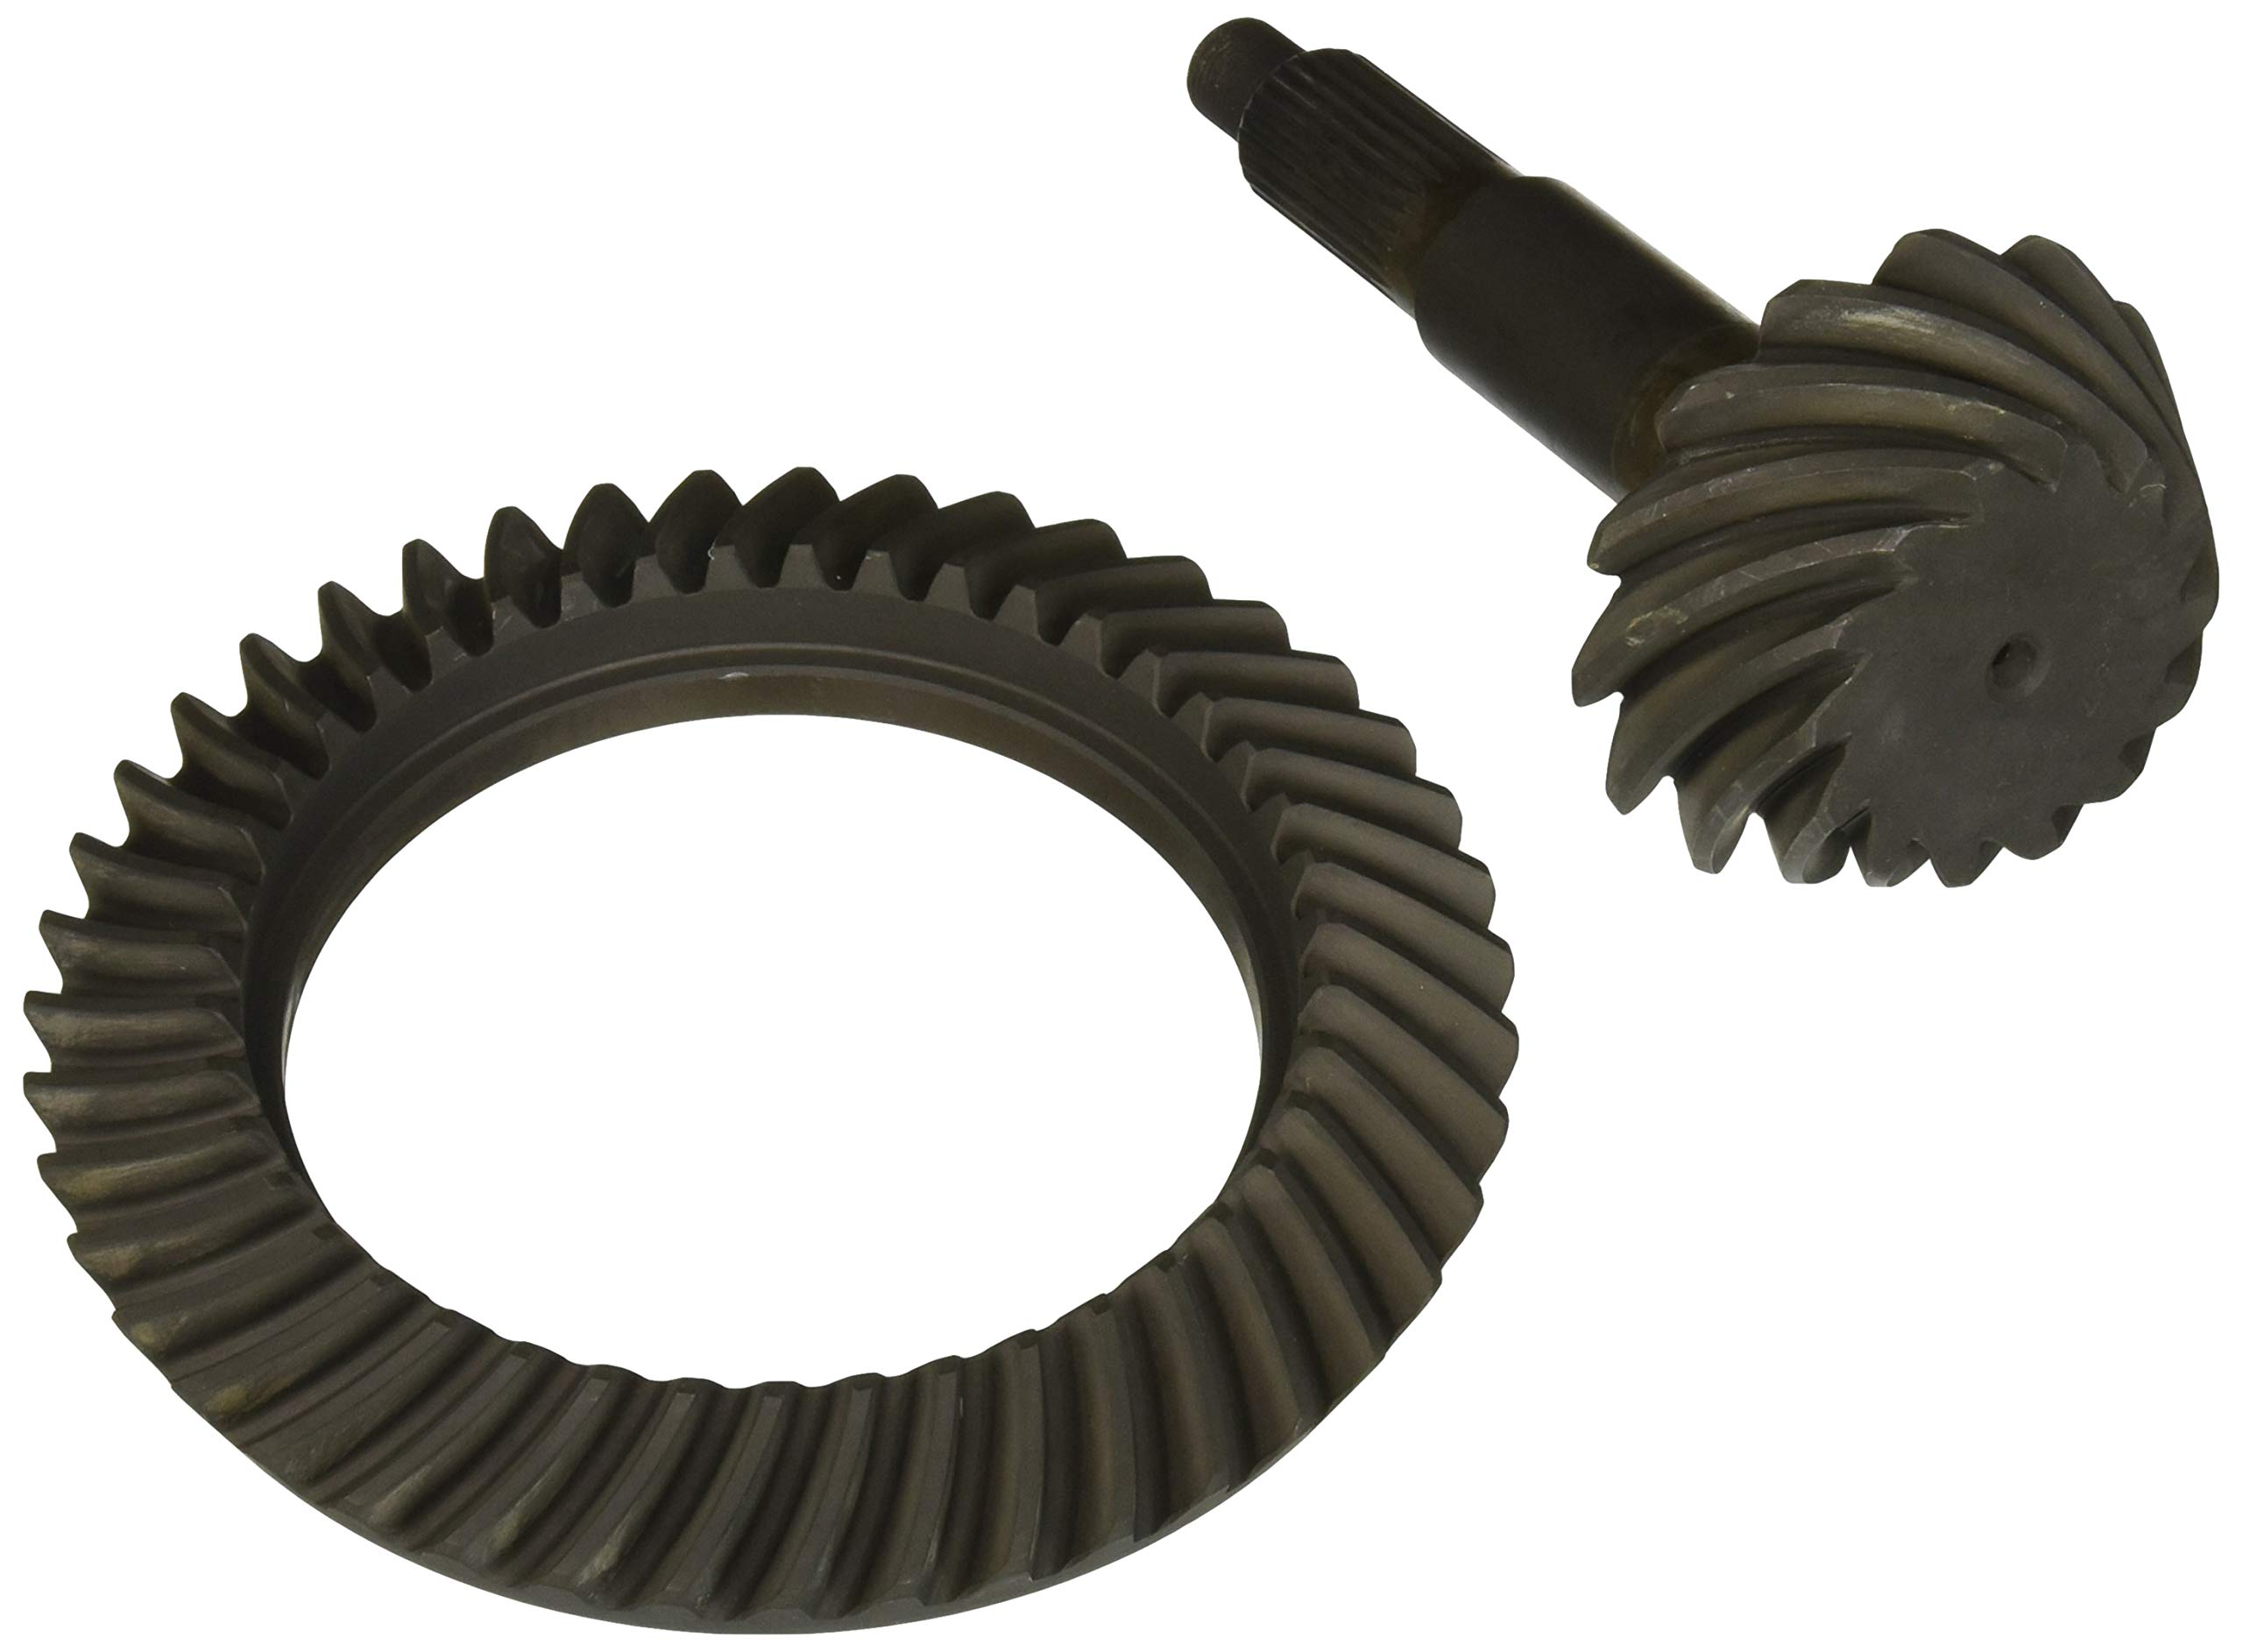 Motive Gear (D44-307) Performance Ring and Pinion Differential Set, Dana 44 - 1967 & Earlier, 43-14 Teeth, 3.07 Ratio by Motive Gear (Image #2)